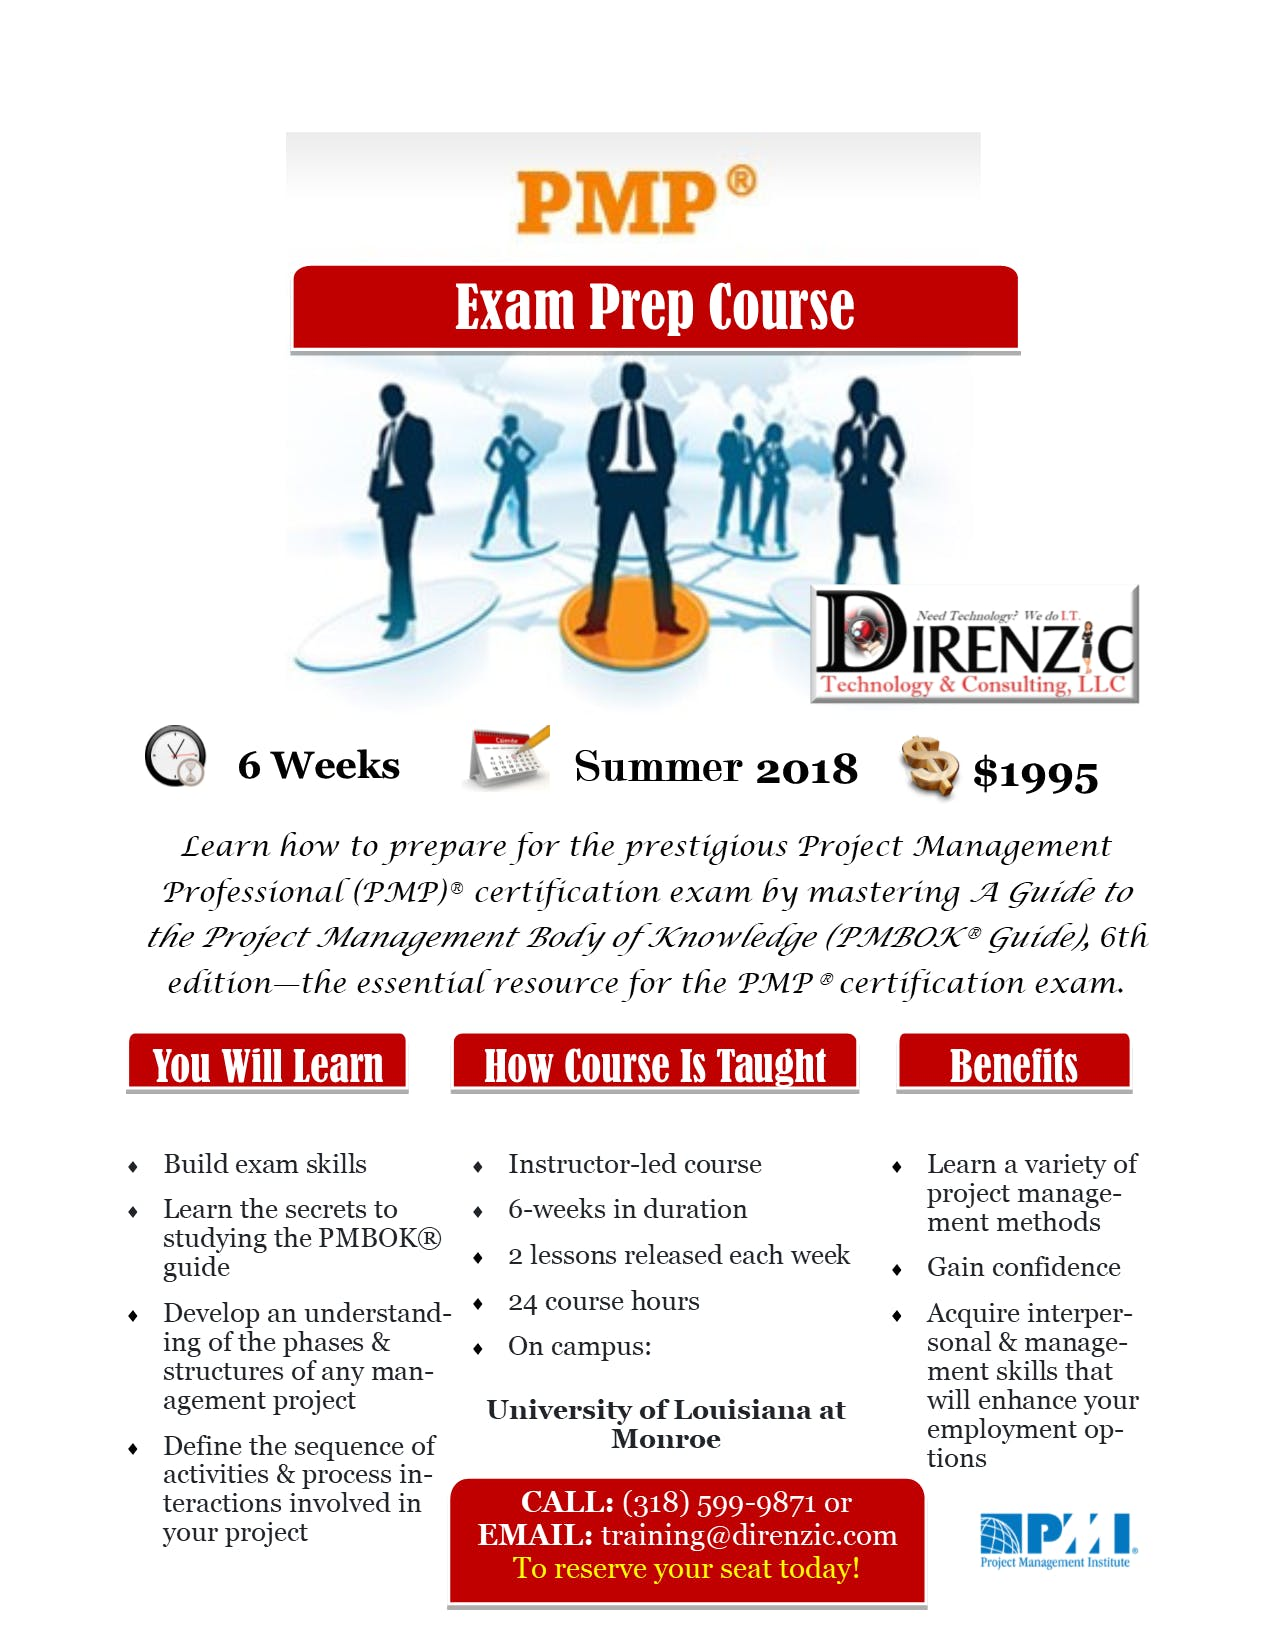 Project Management Professional Pmp Exam Prep 6 Week Course 15